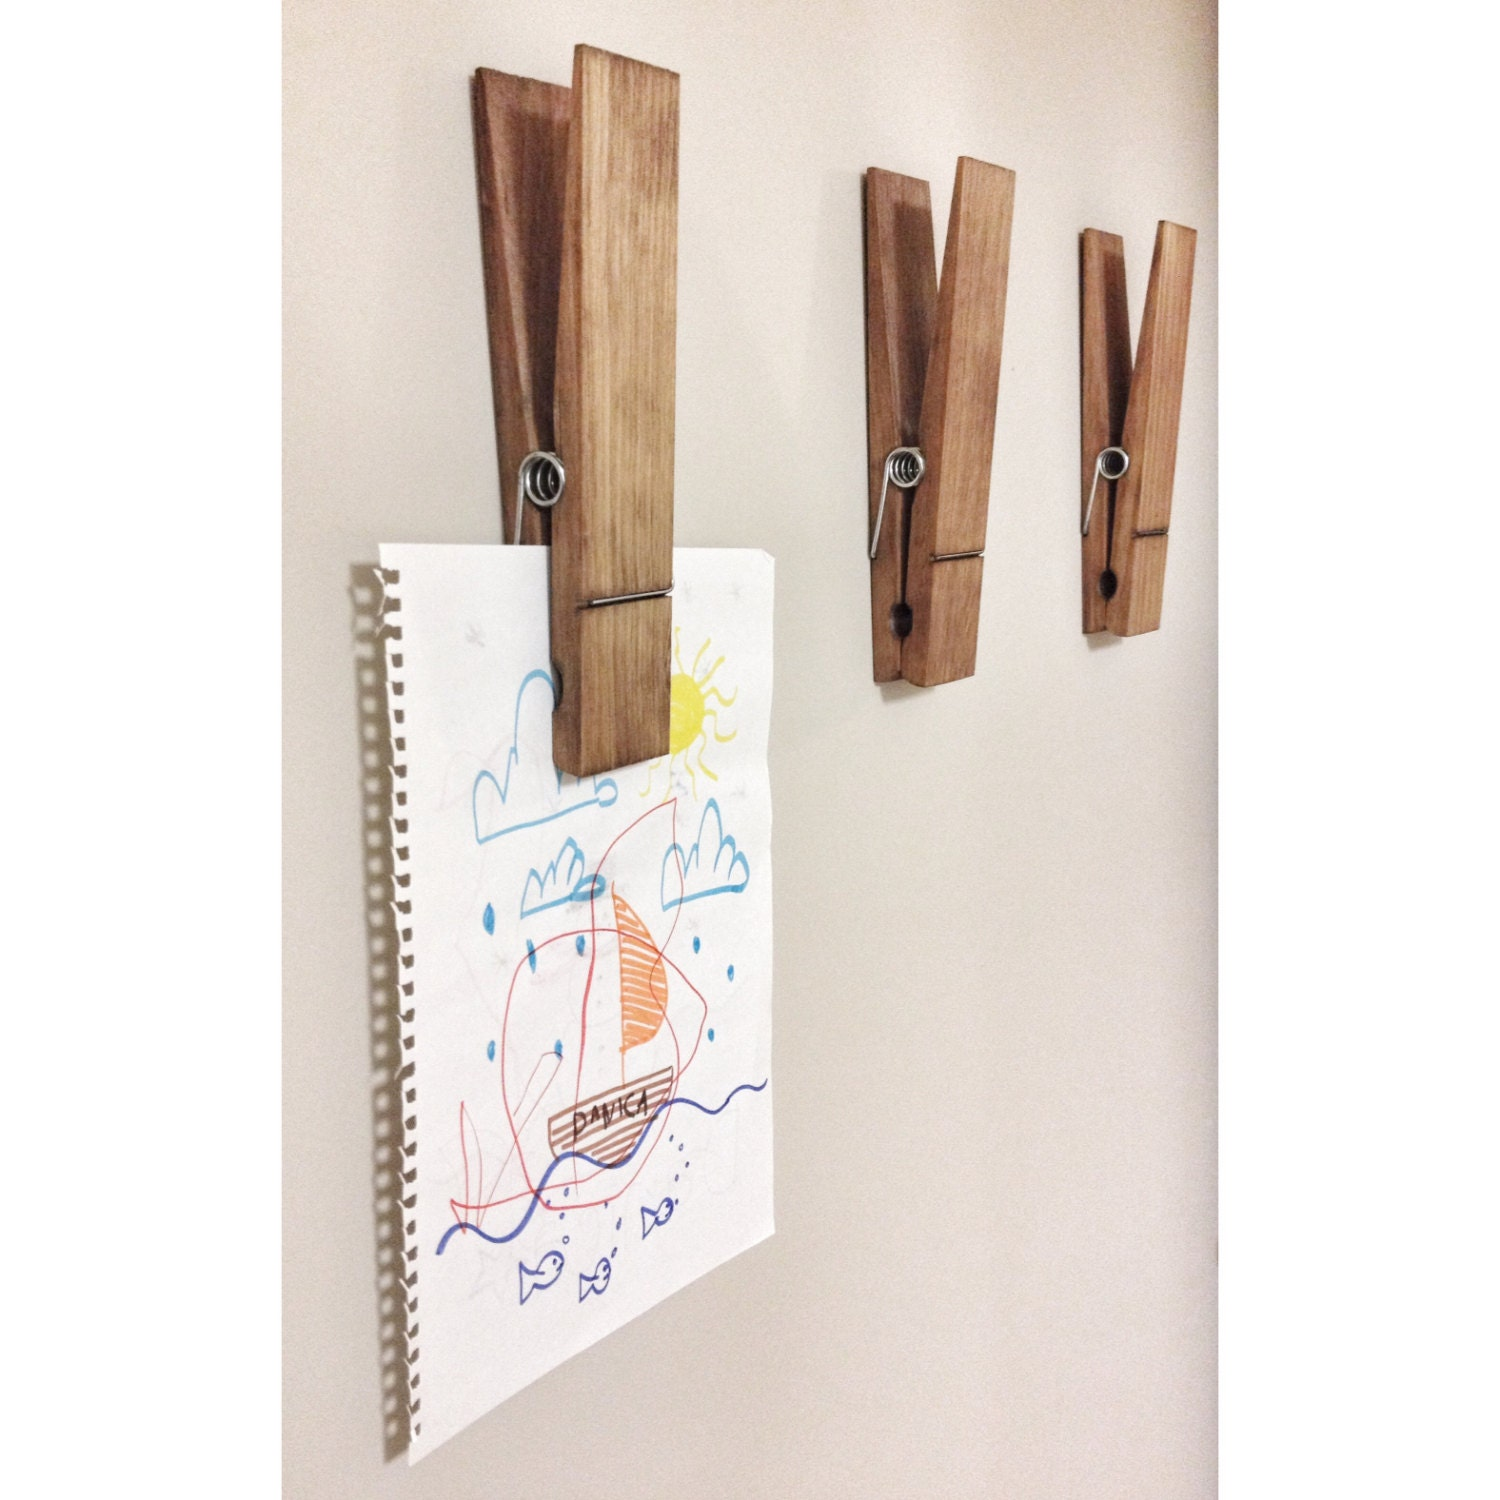 Large rustic 9 decorative clothespin in dark walnut finish large rustic 9 decorative clothespin in dark walnut finish office home bathroom nursery laundry wall decor note photo holder gift amipublicfo Gallery